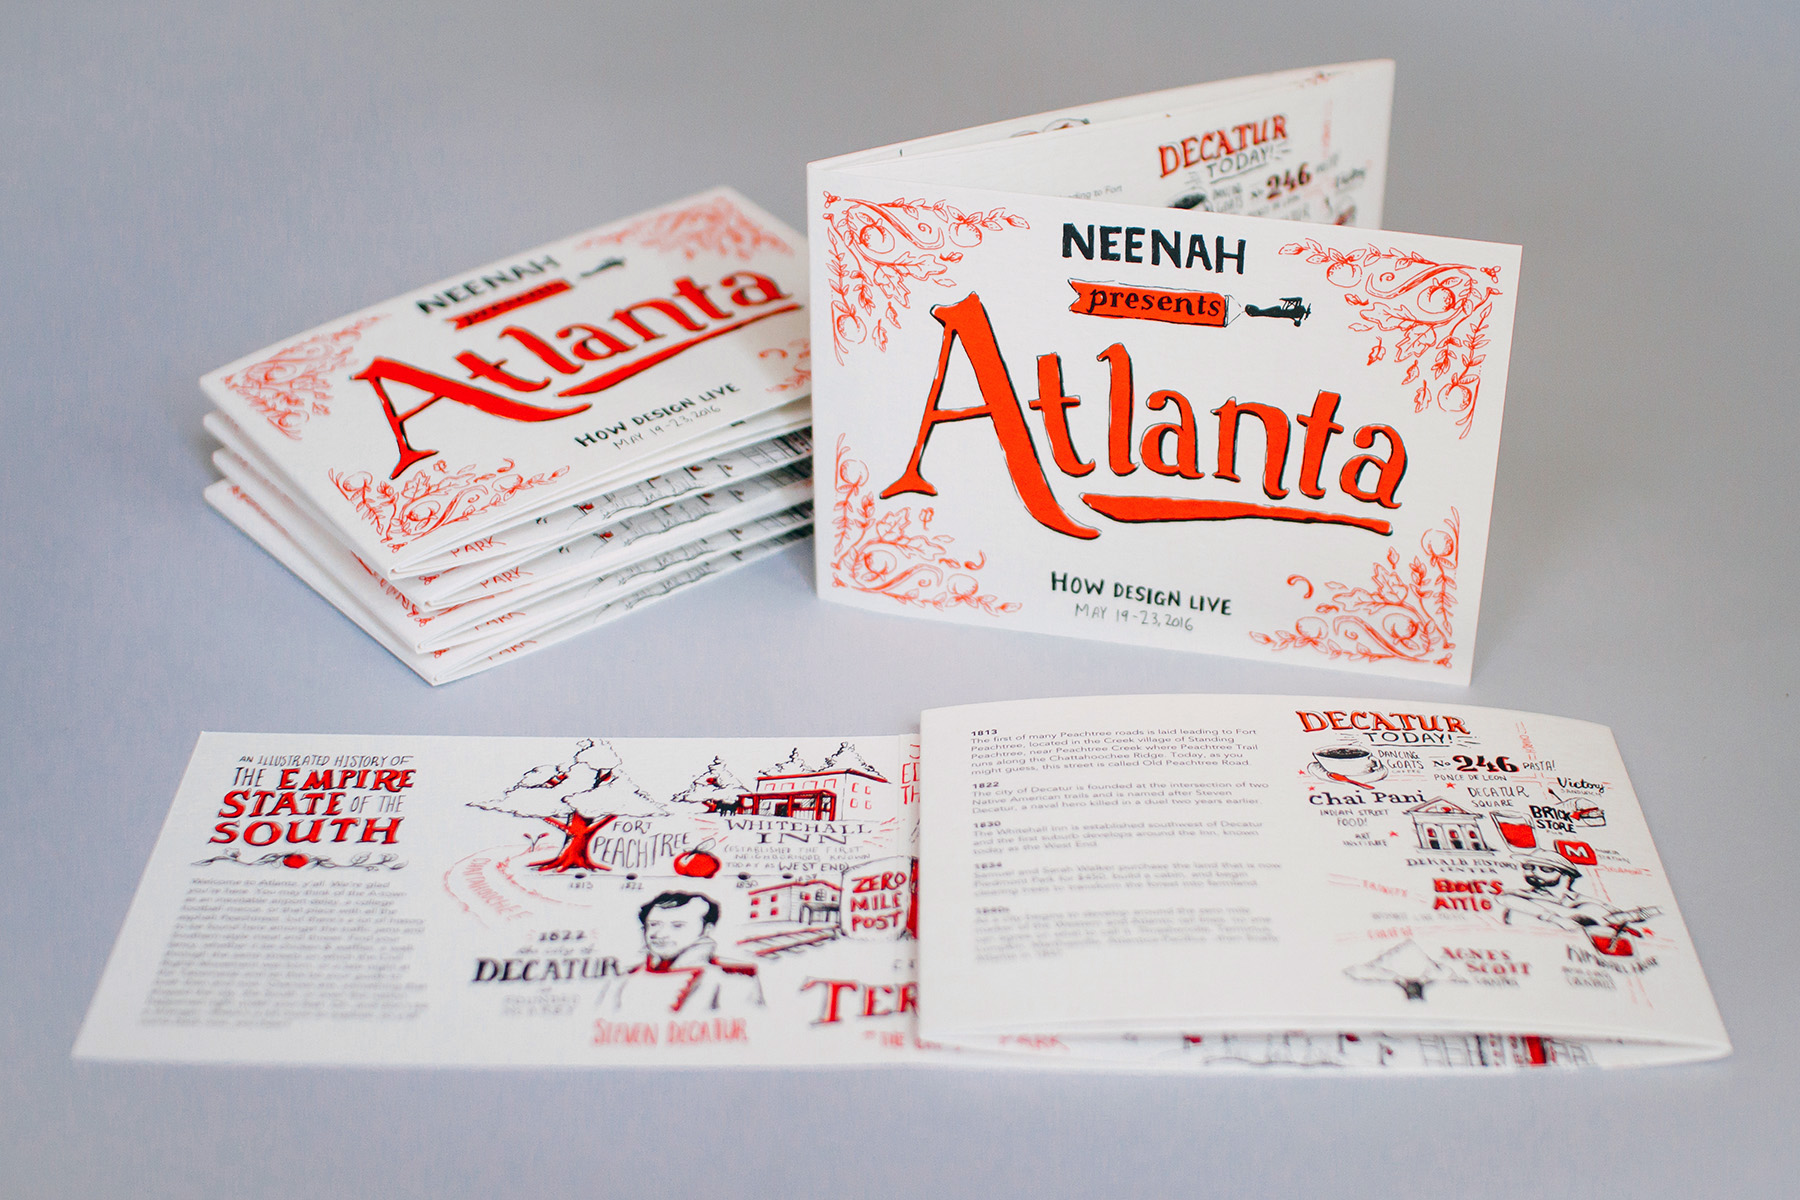 """A stack of the """"Neenah presents Atlanta,"""" for How Design Live 2016, illustrated timeline and map. Reveals the hand drawn color illustration and the open first panel to the Decatur today neighborhood city map."""